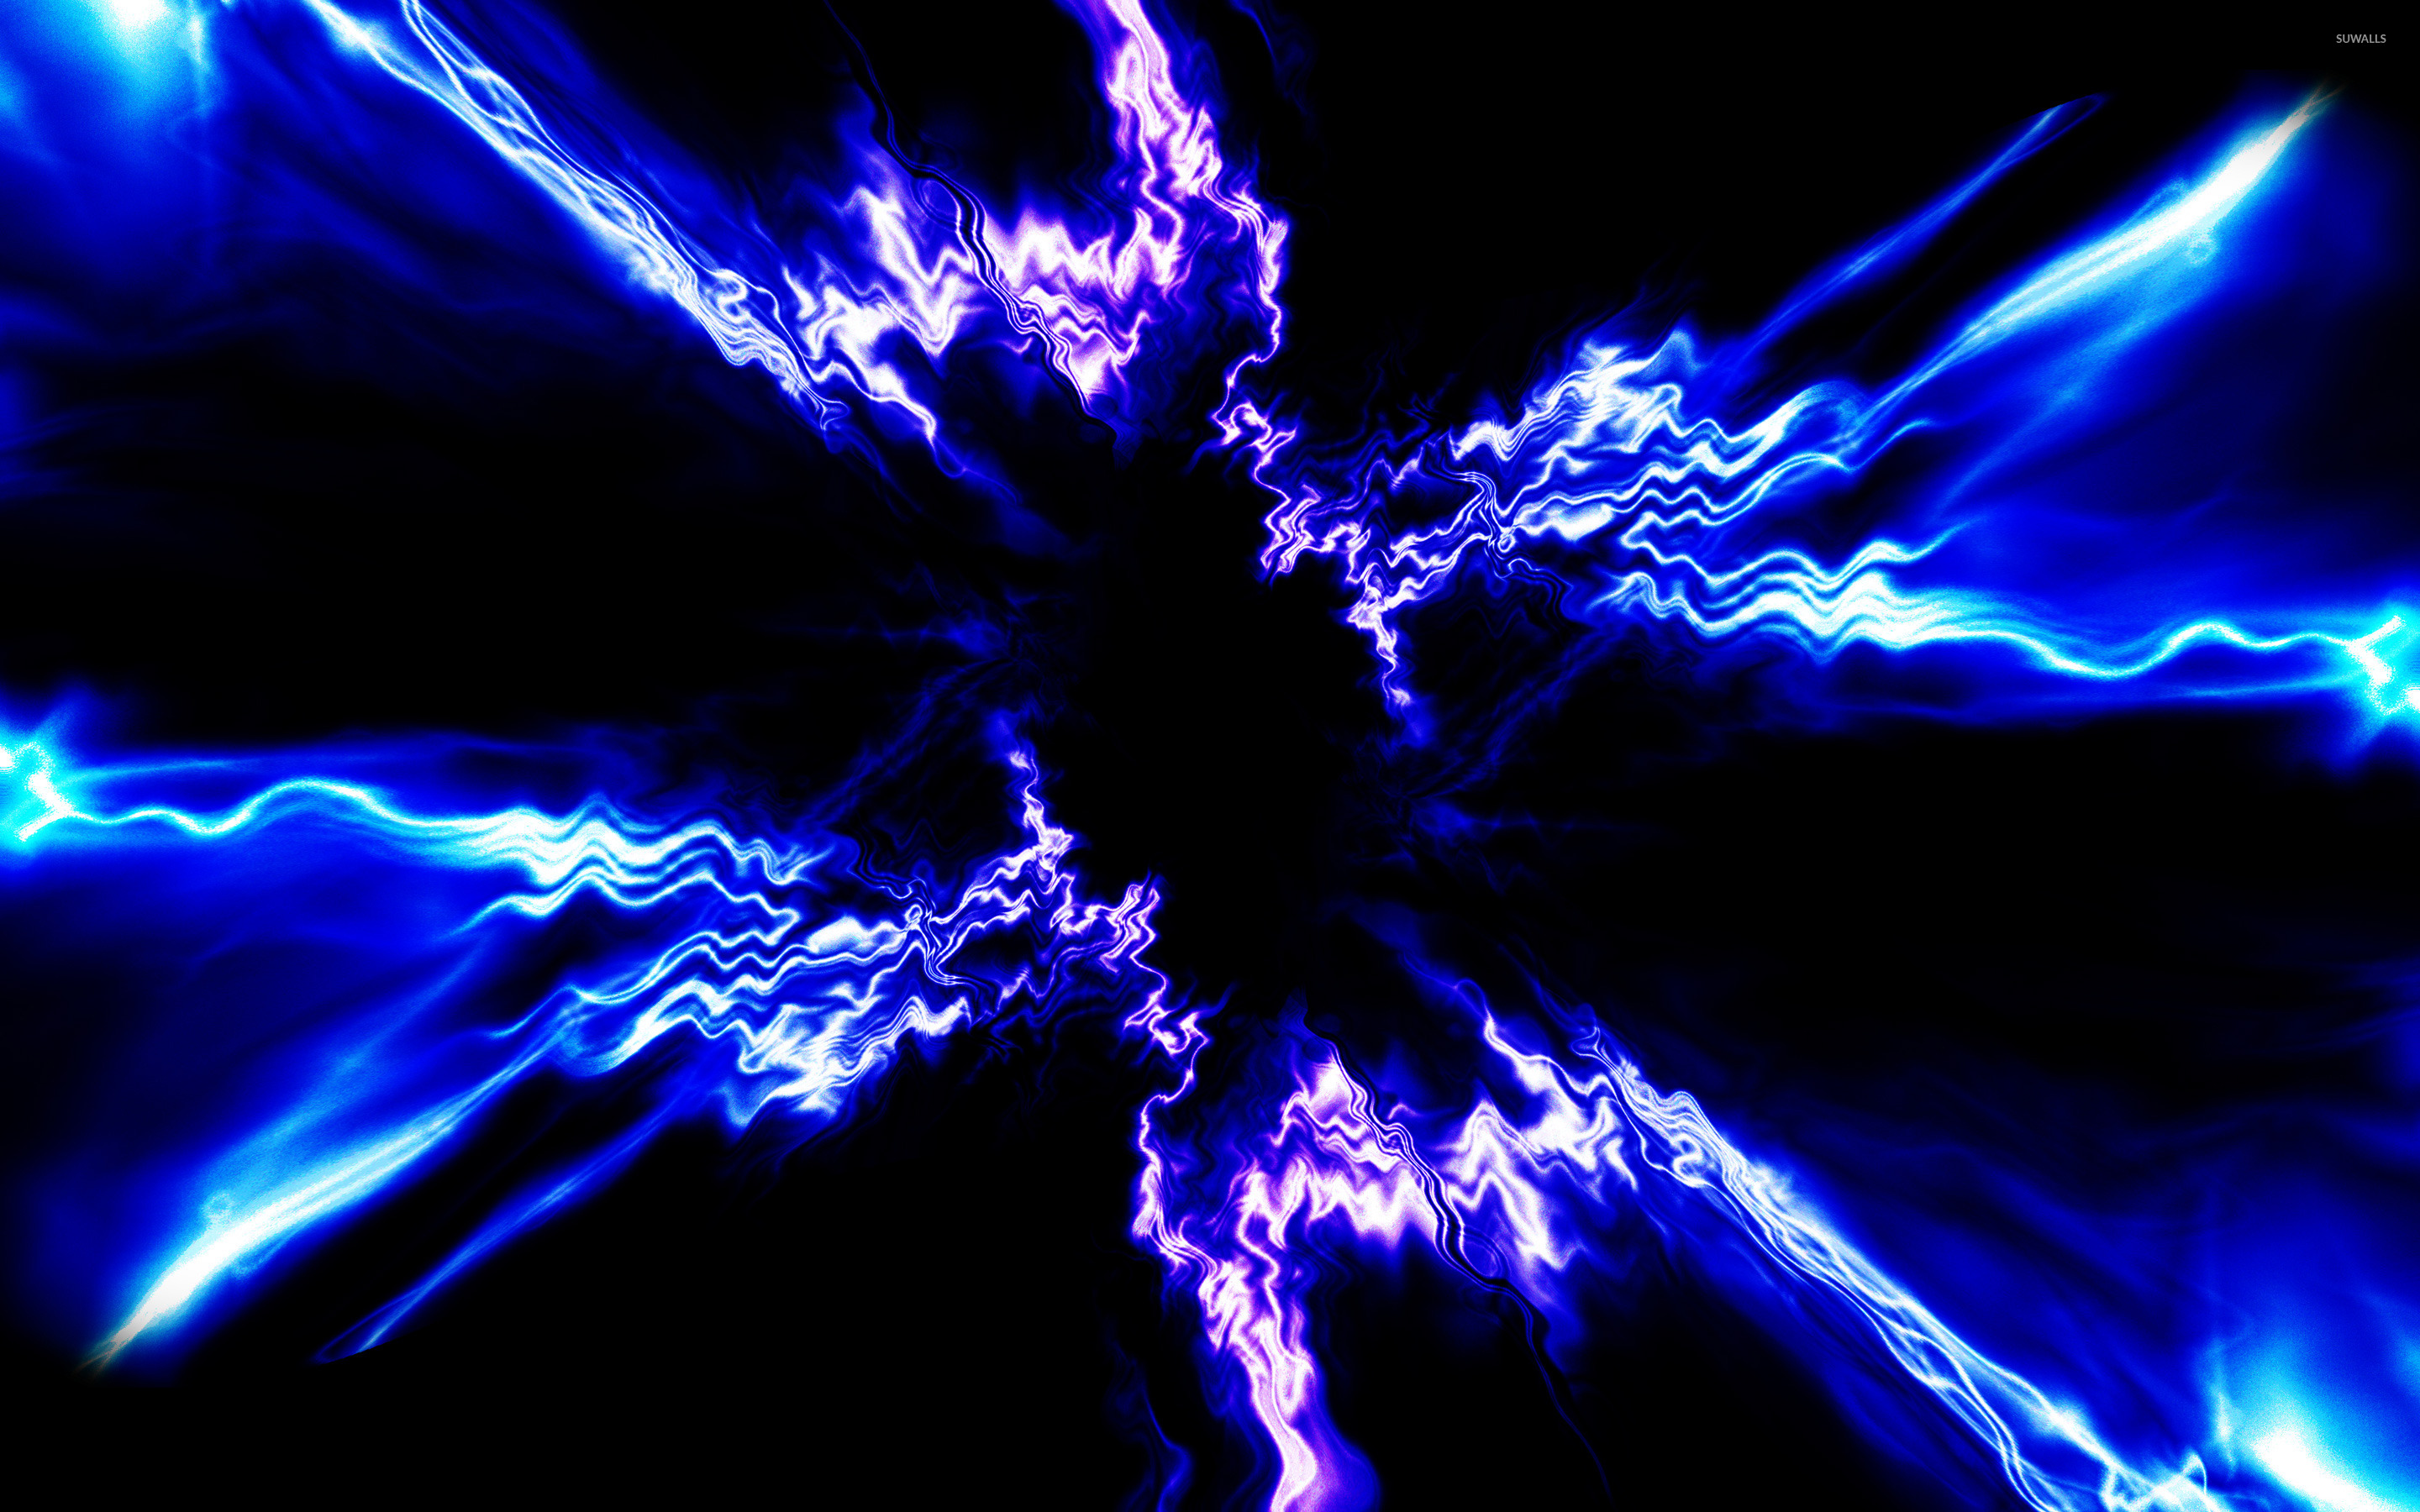 electric waves wallpaper abstract wallpapers 25919